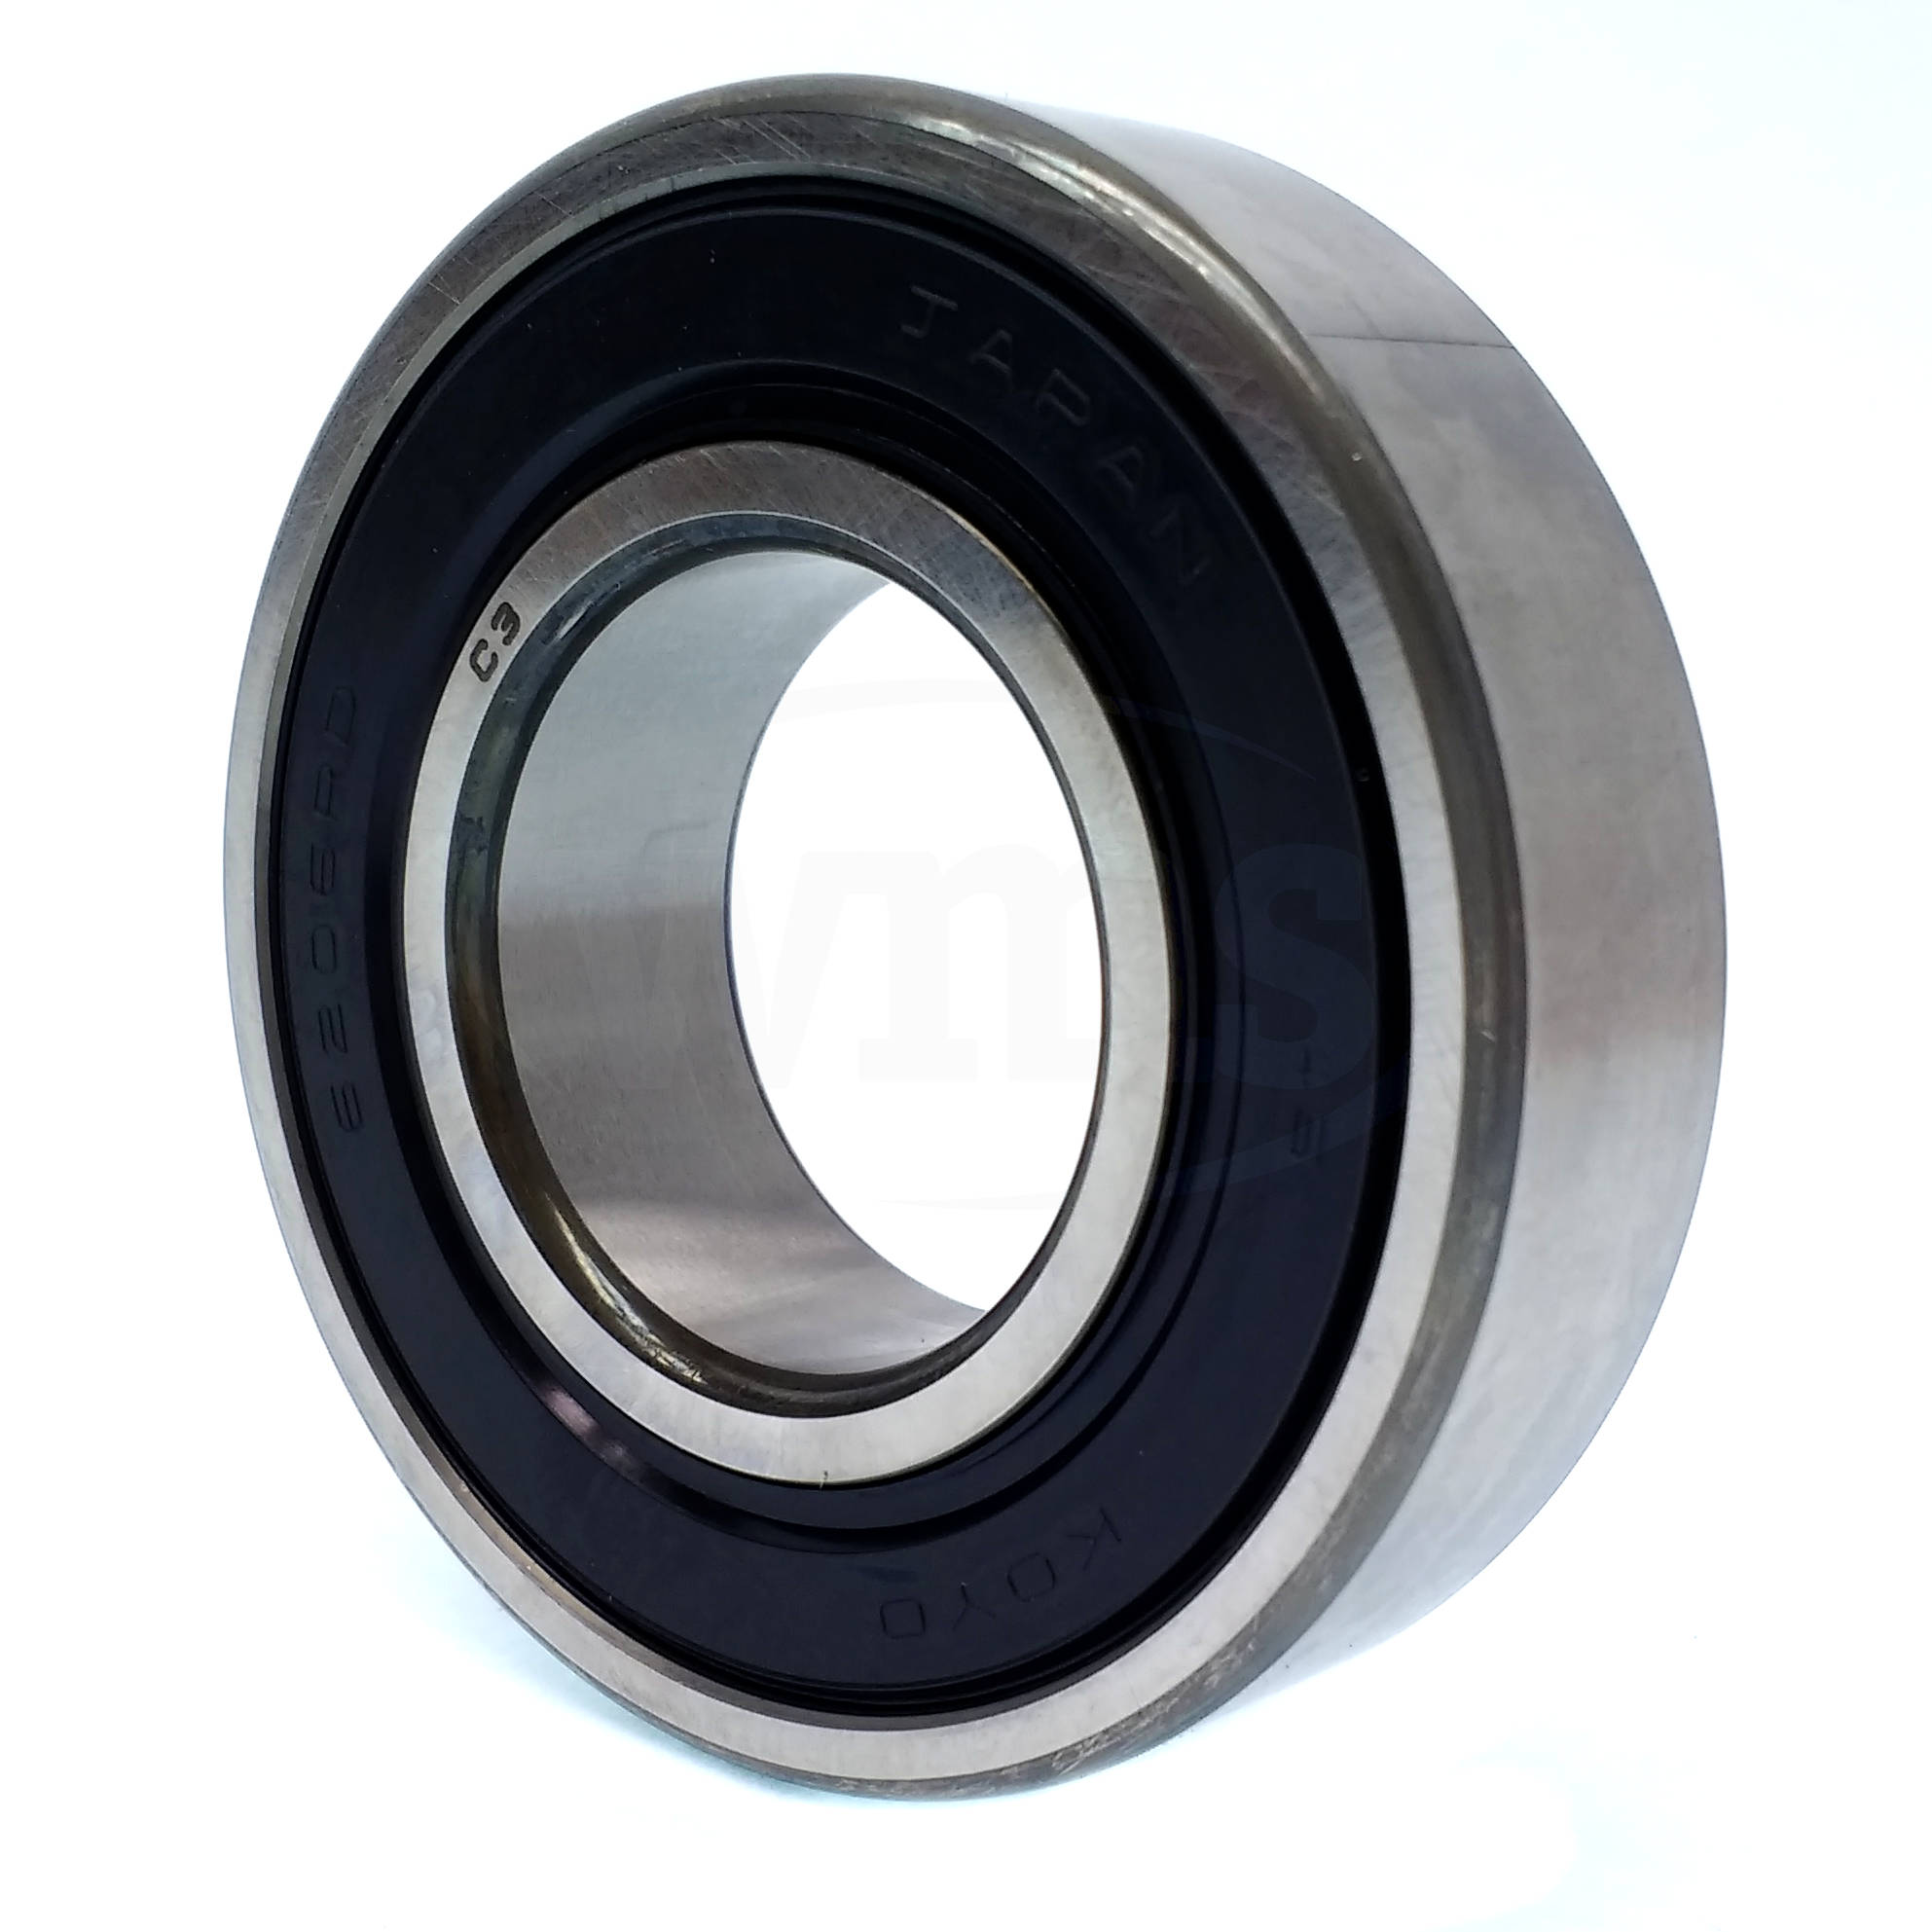 62062RDC3 Koyo Ball Bearing, Rubber Sealed 7